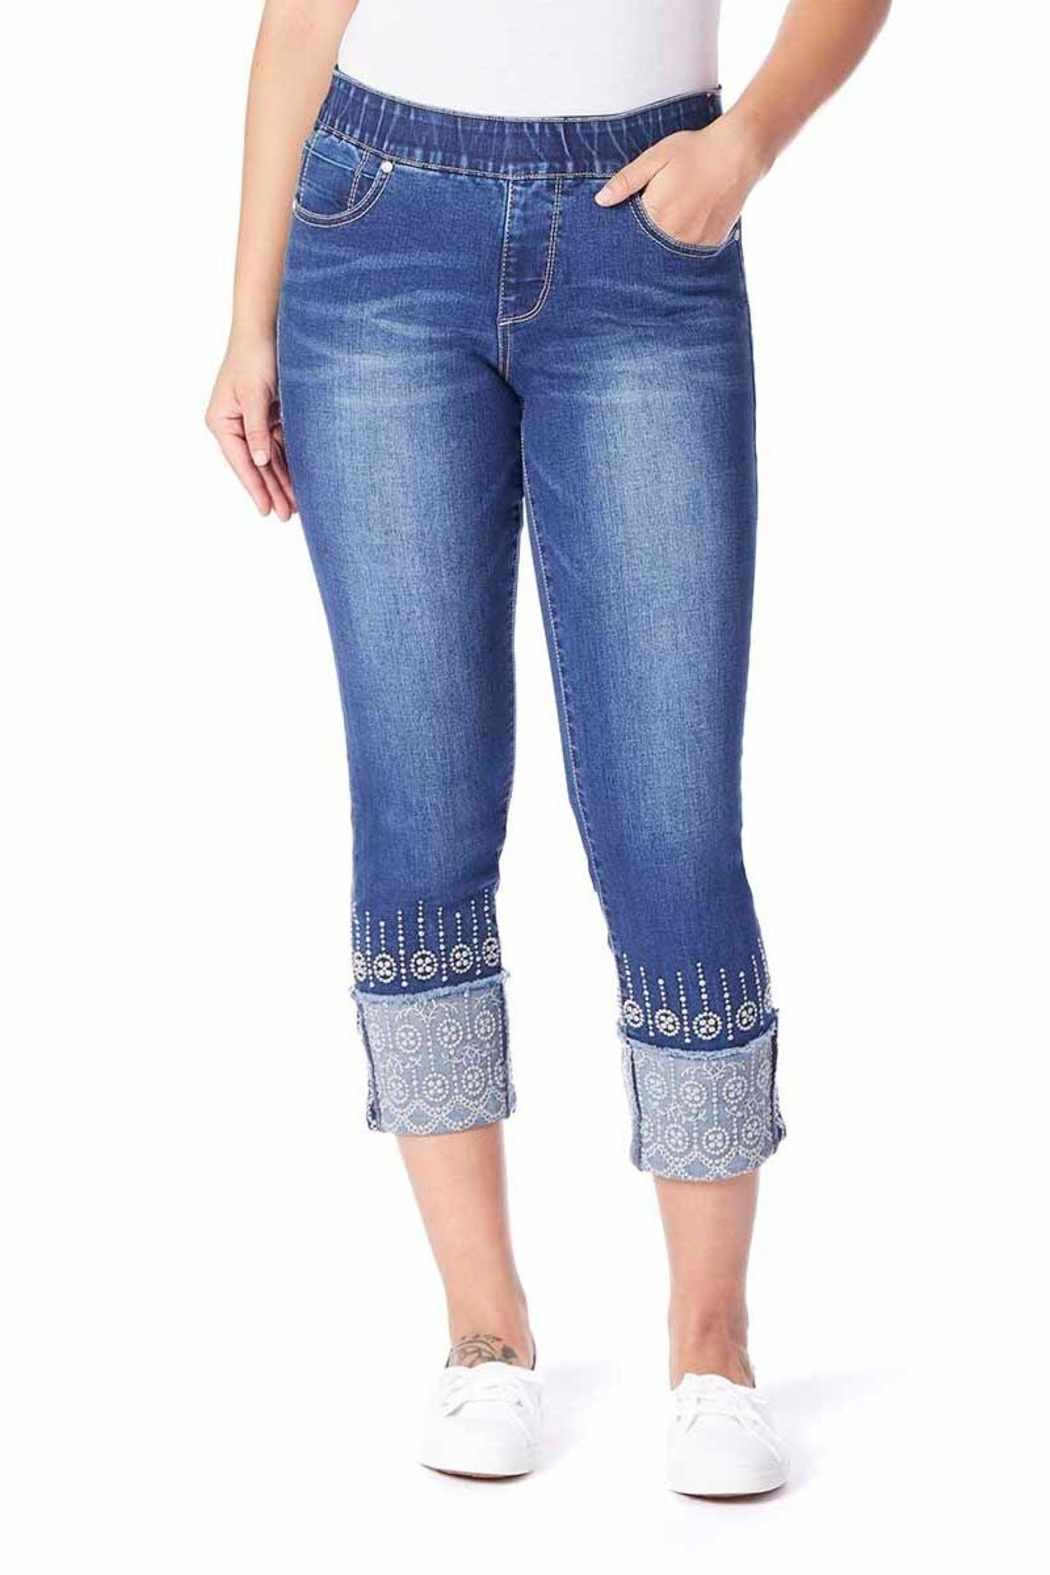 JAG Jeans Embroidery Cuff Jeans - Main Image